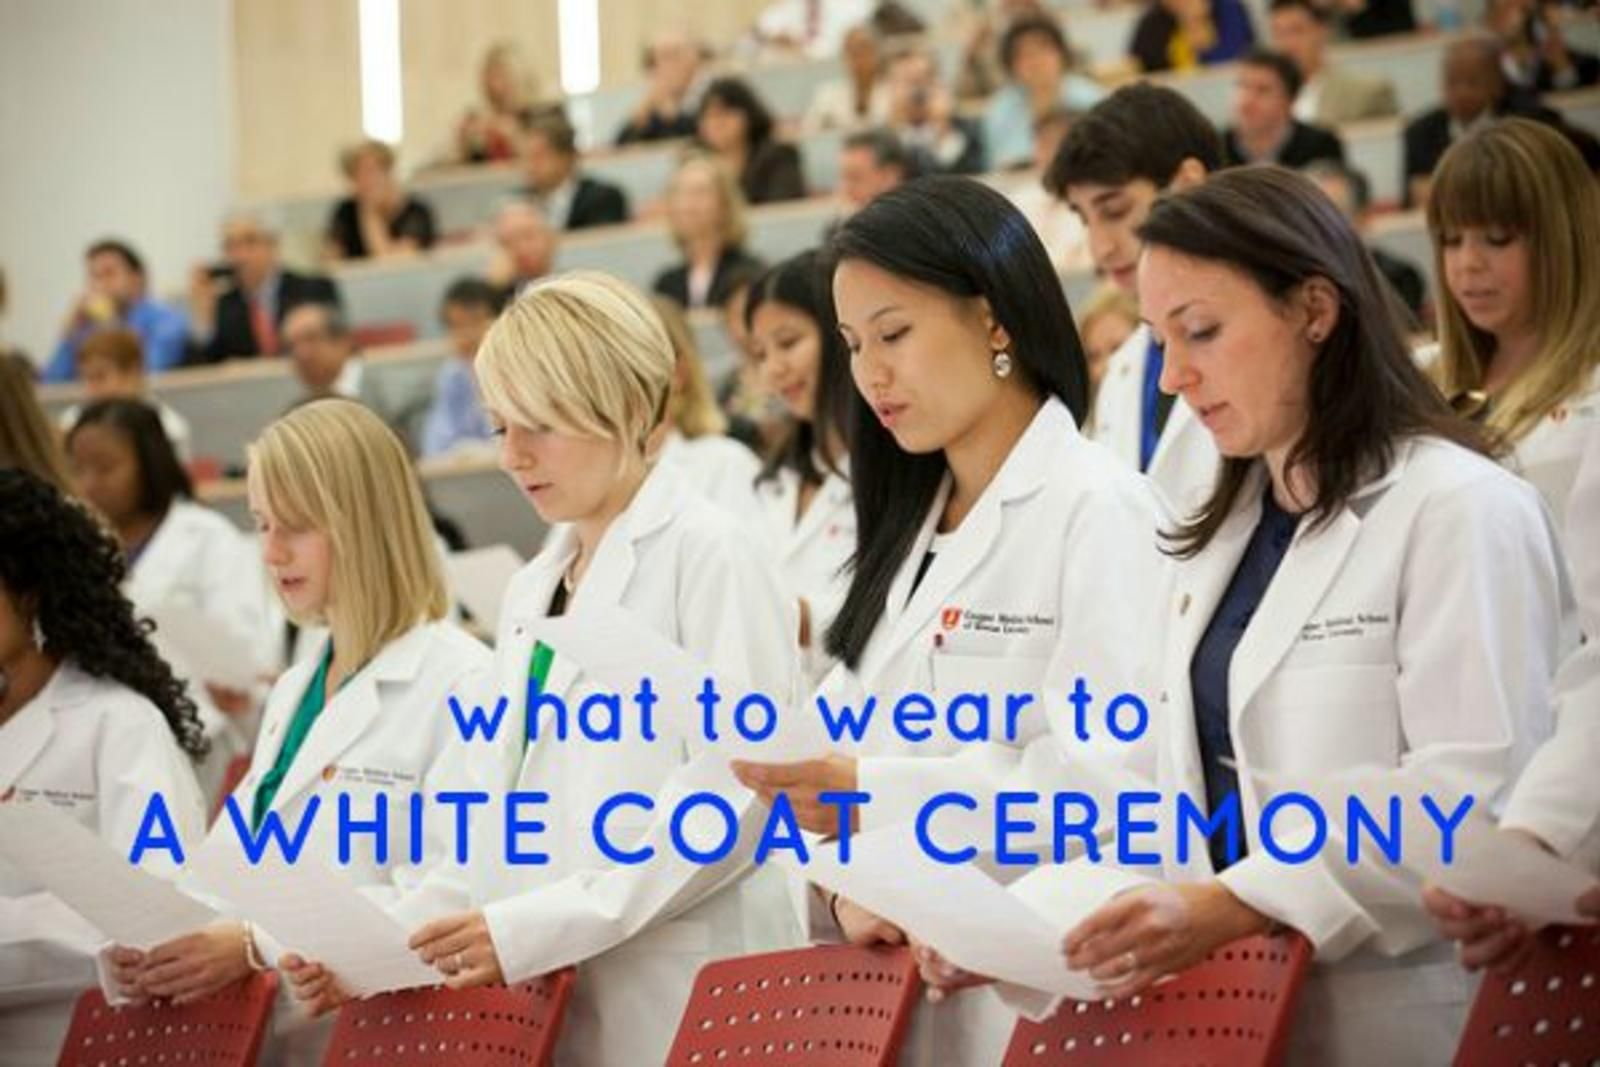 798765f30d5 What to Wear to a White Coat Ceremony. As it turns out, they do expect you  to be wearing additional clothing under the coat.